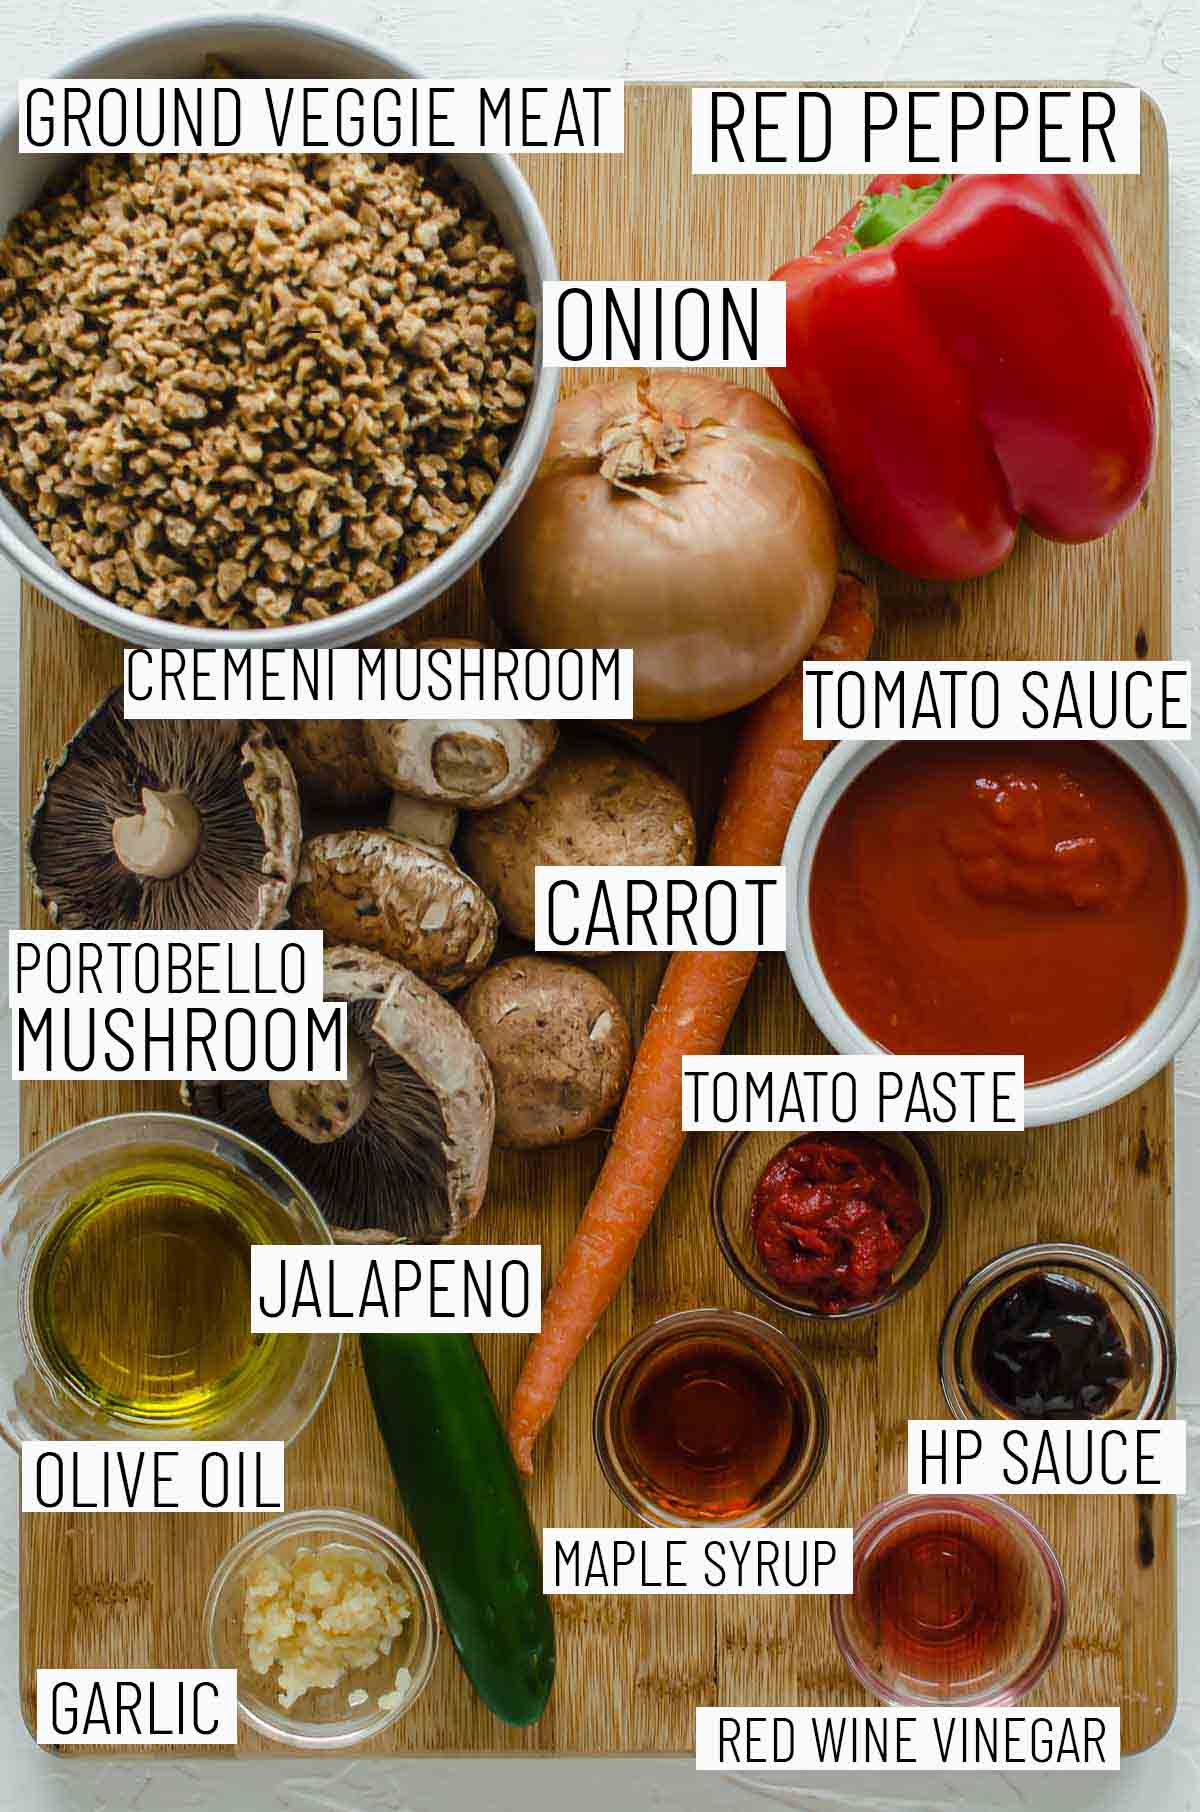 Flat lay image of portioned recipe ingredients including red pepper, onion, veggie meat, tomato sauce, mushrooms, tomato paste, jalapeno, olive oil, garlic, red wine vinegar, HP sauce, and maple syrup.